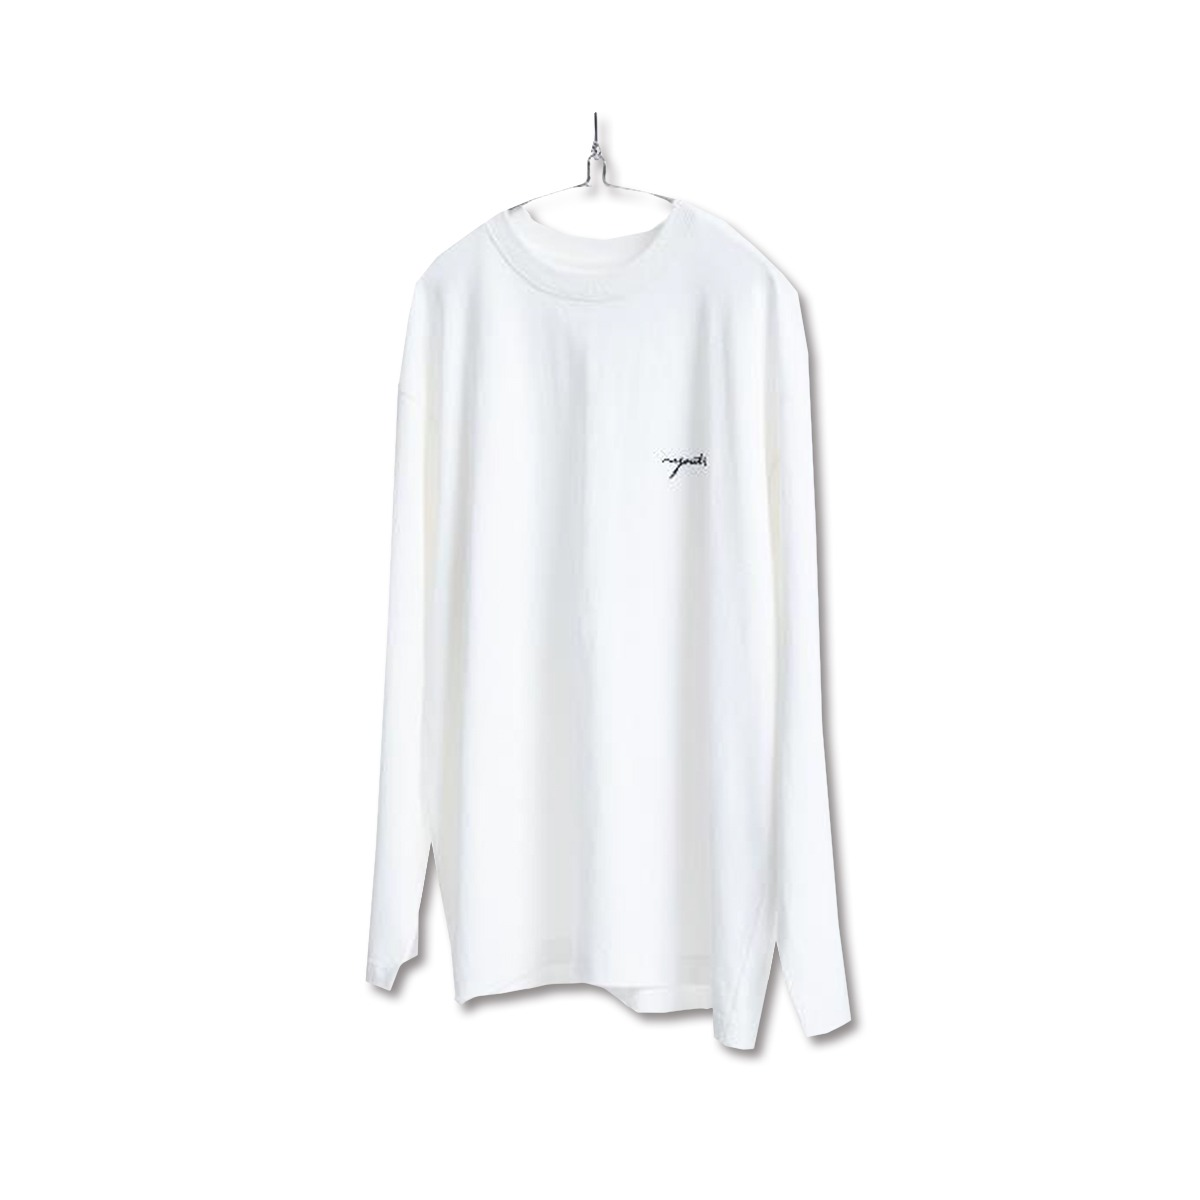 [YOUTH] L/S LOGO T-SHIRT 'WHITE'